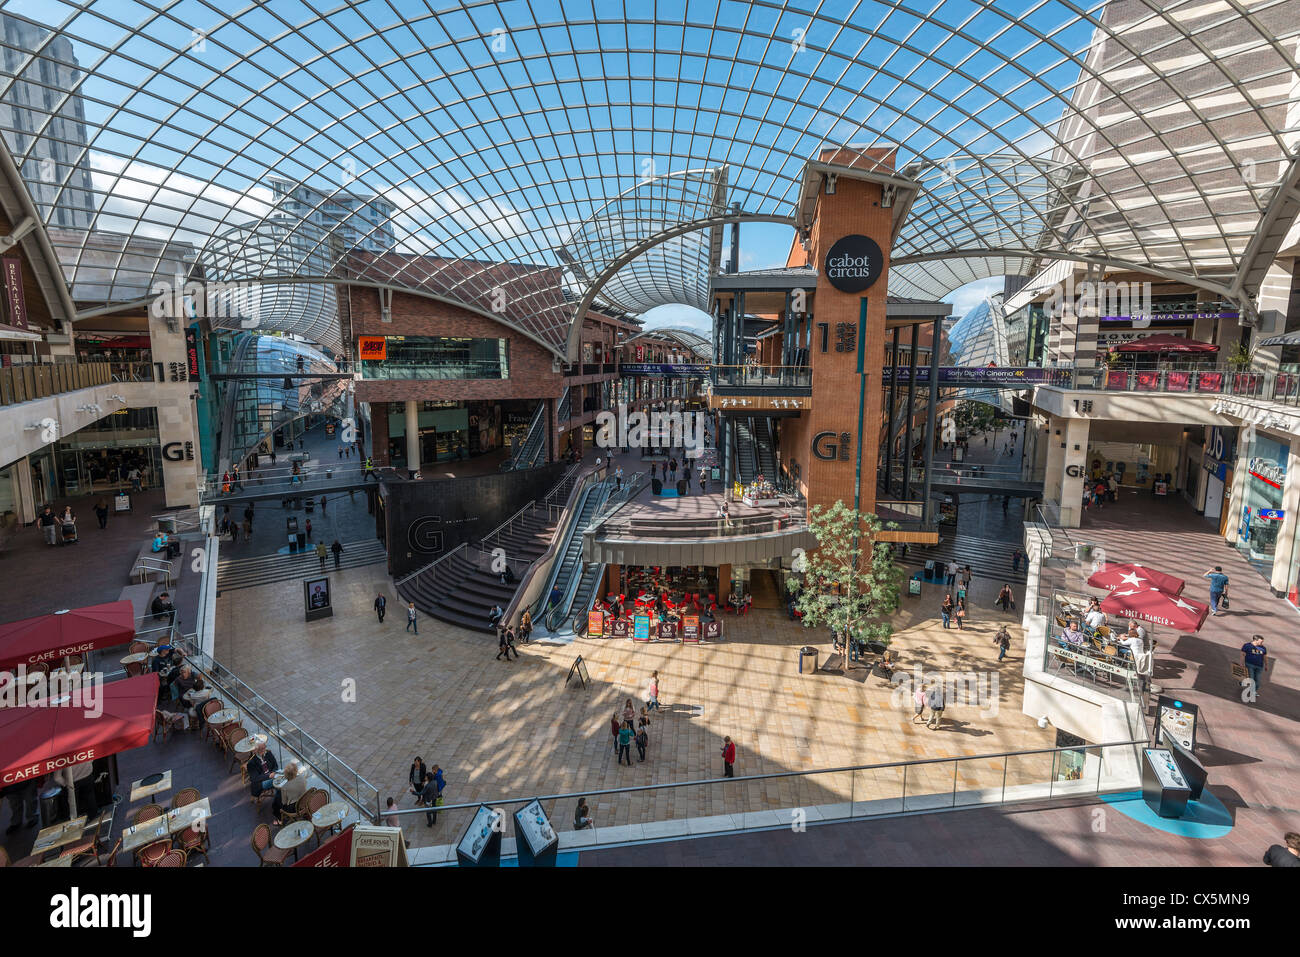 f33b5e1a34457 INTERIOR OF CABOT CIRCUS SHOPPING CENTRE SHOWINGGLASS ROOF AND SHOPPING  LEVELS